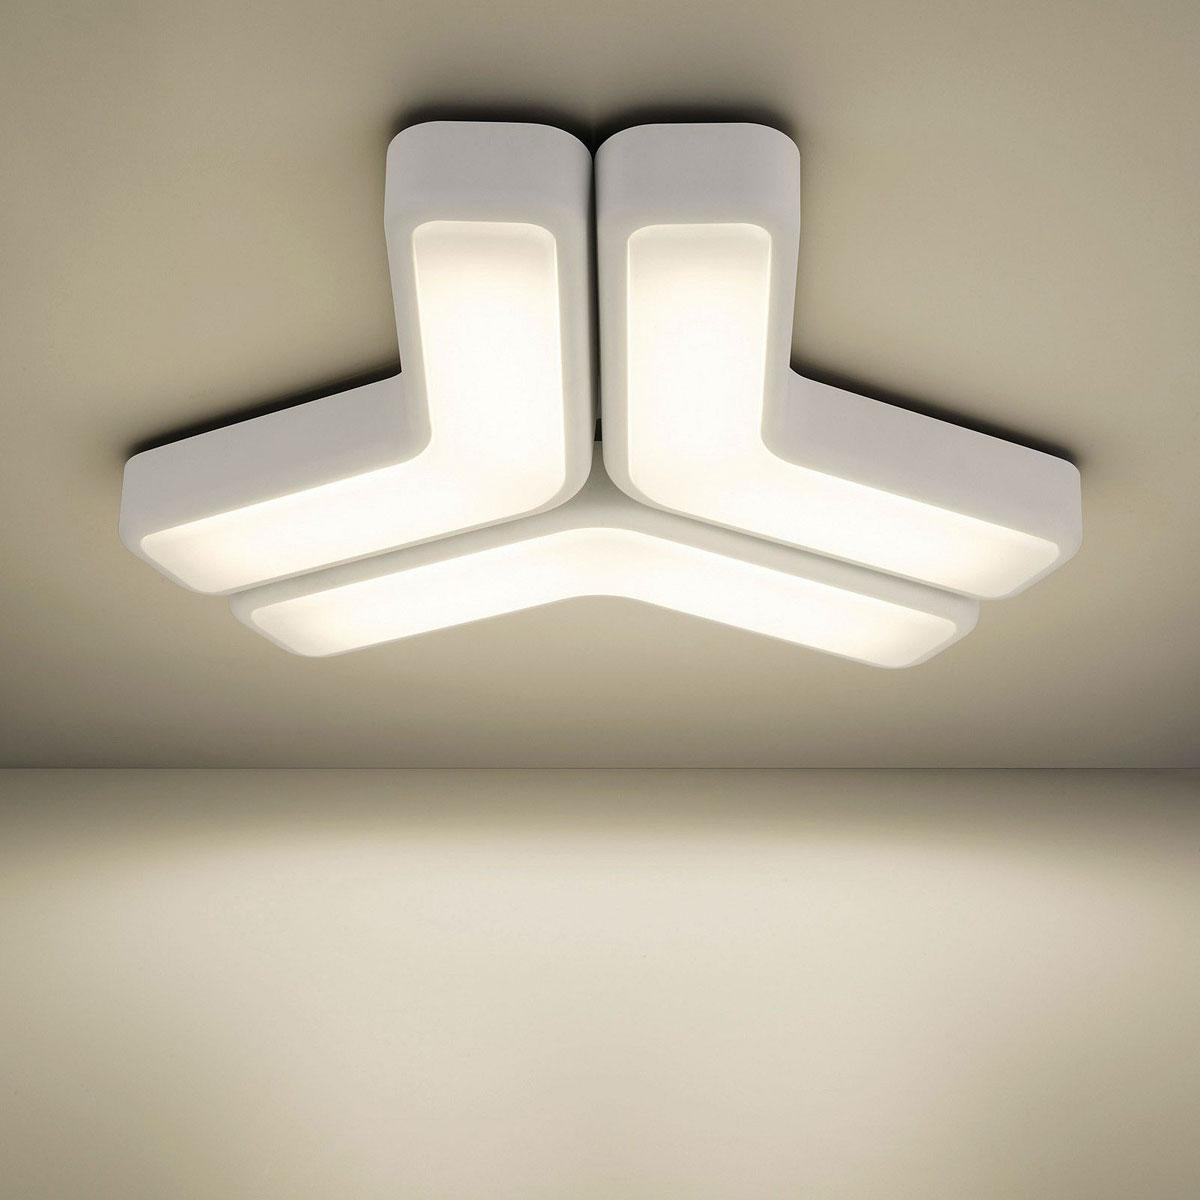 Philips ecomoods playful 331003116 wall light white lamps philips ecomoods playful 331003116 wall light white aloadofball Image collections